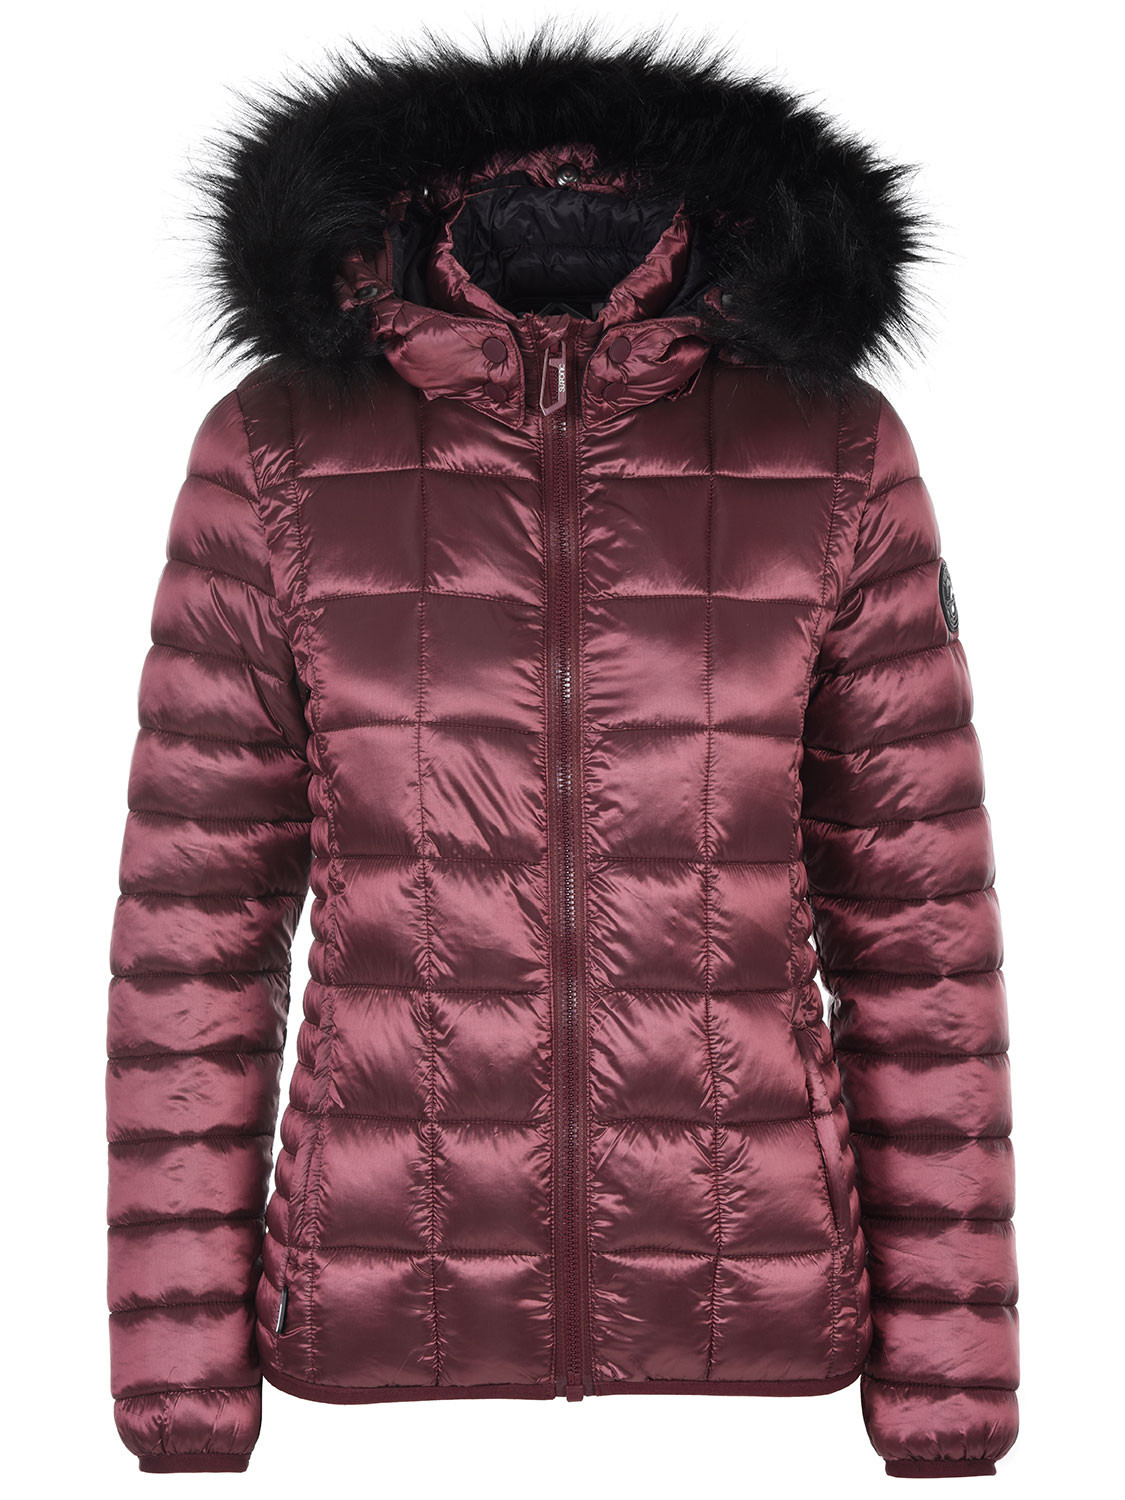 Shimmer Recycled Insulation Jacket